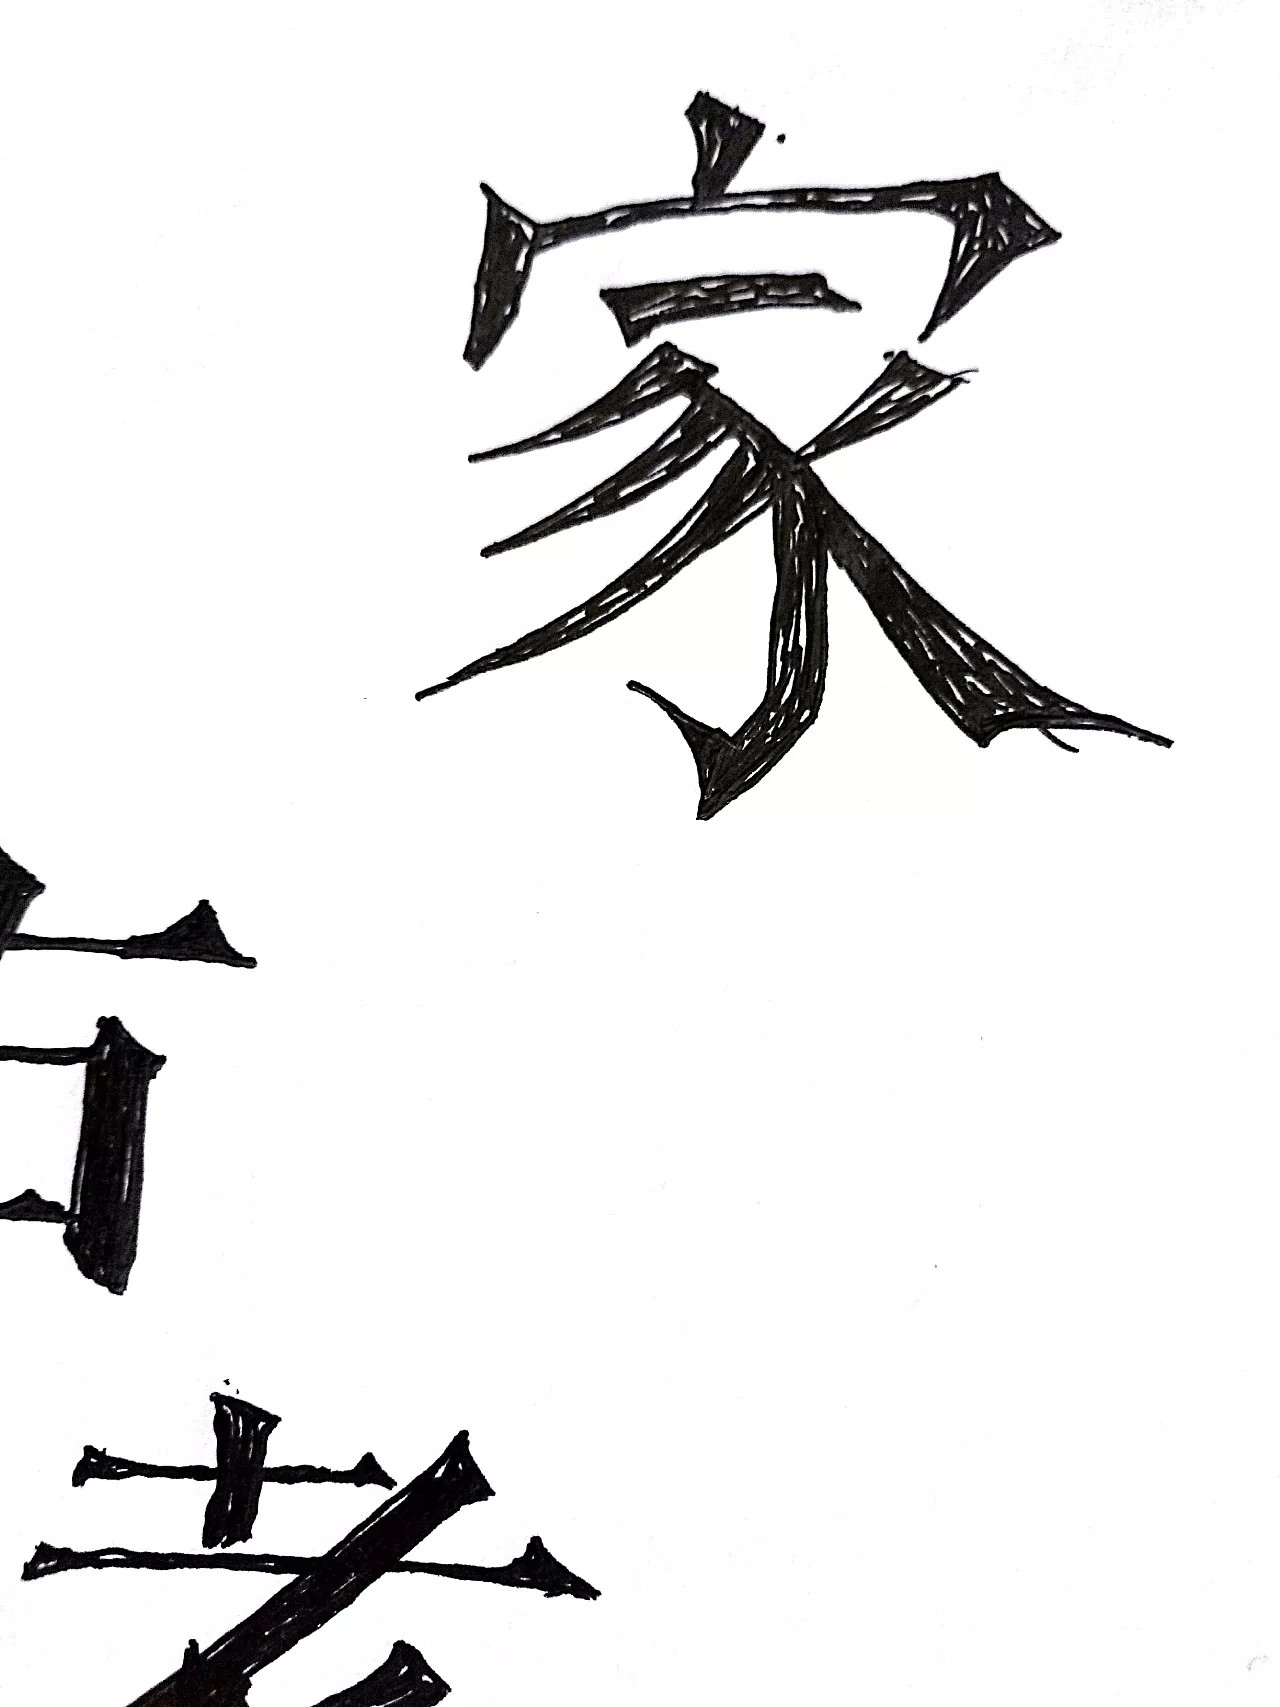 chinesefontdesign.com 2018 04 04 07 29 52 543252 18P Wonderful handwritten art chinese font design